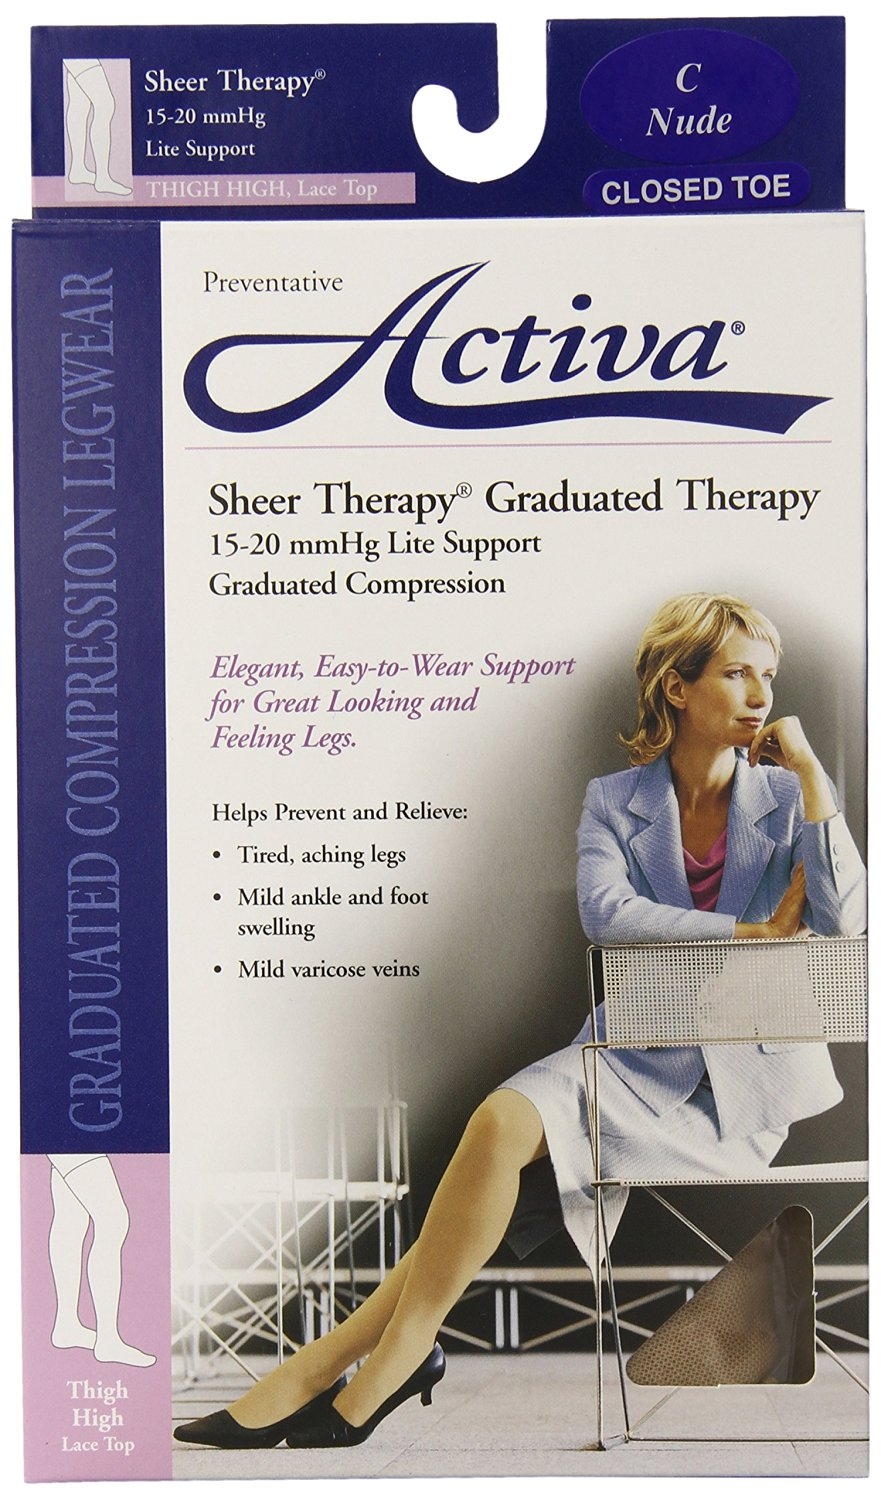 Activa Sheer Therapy 15-20 mmHg Thigh High Closed Toe Hosiery with Lace Top, Nude, Size C,